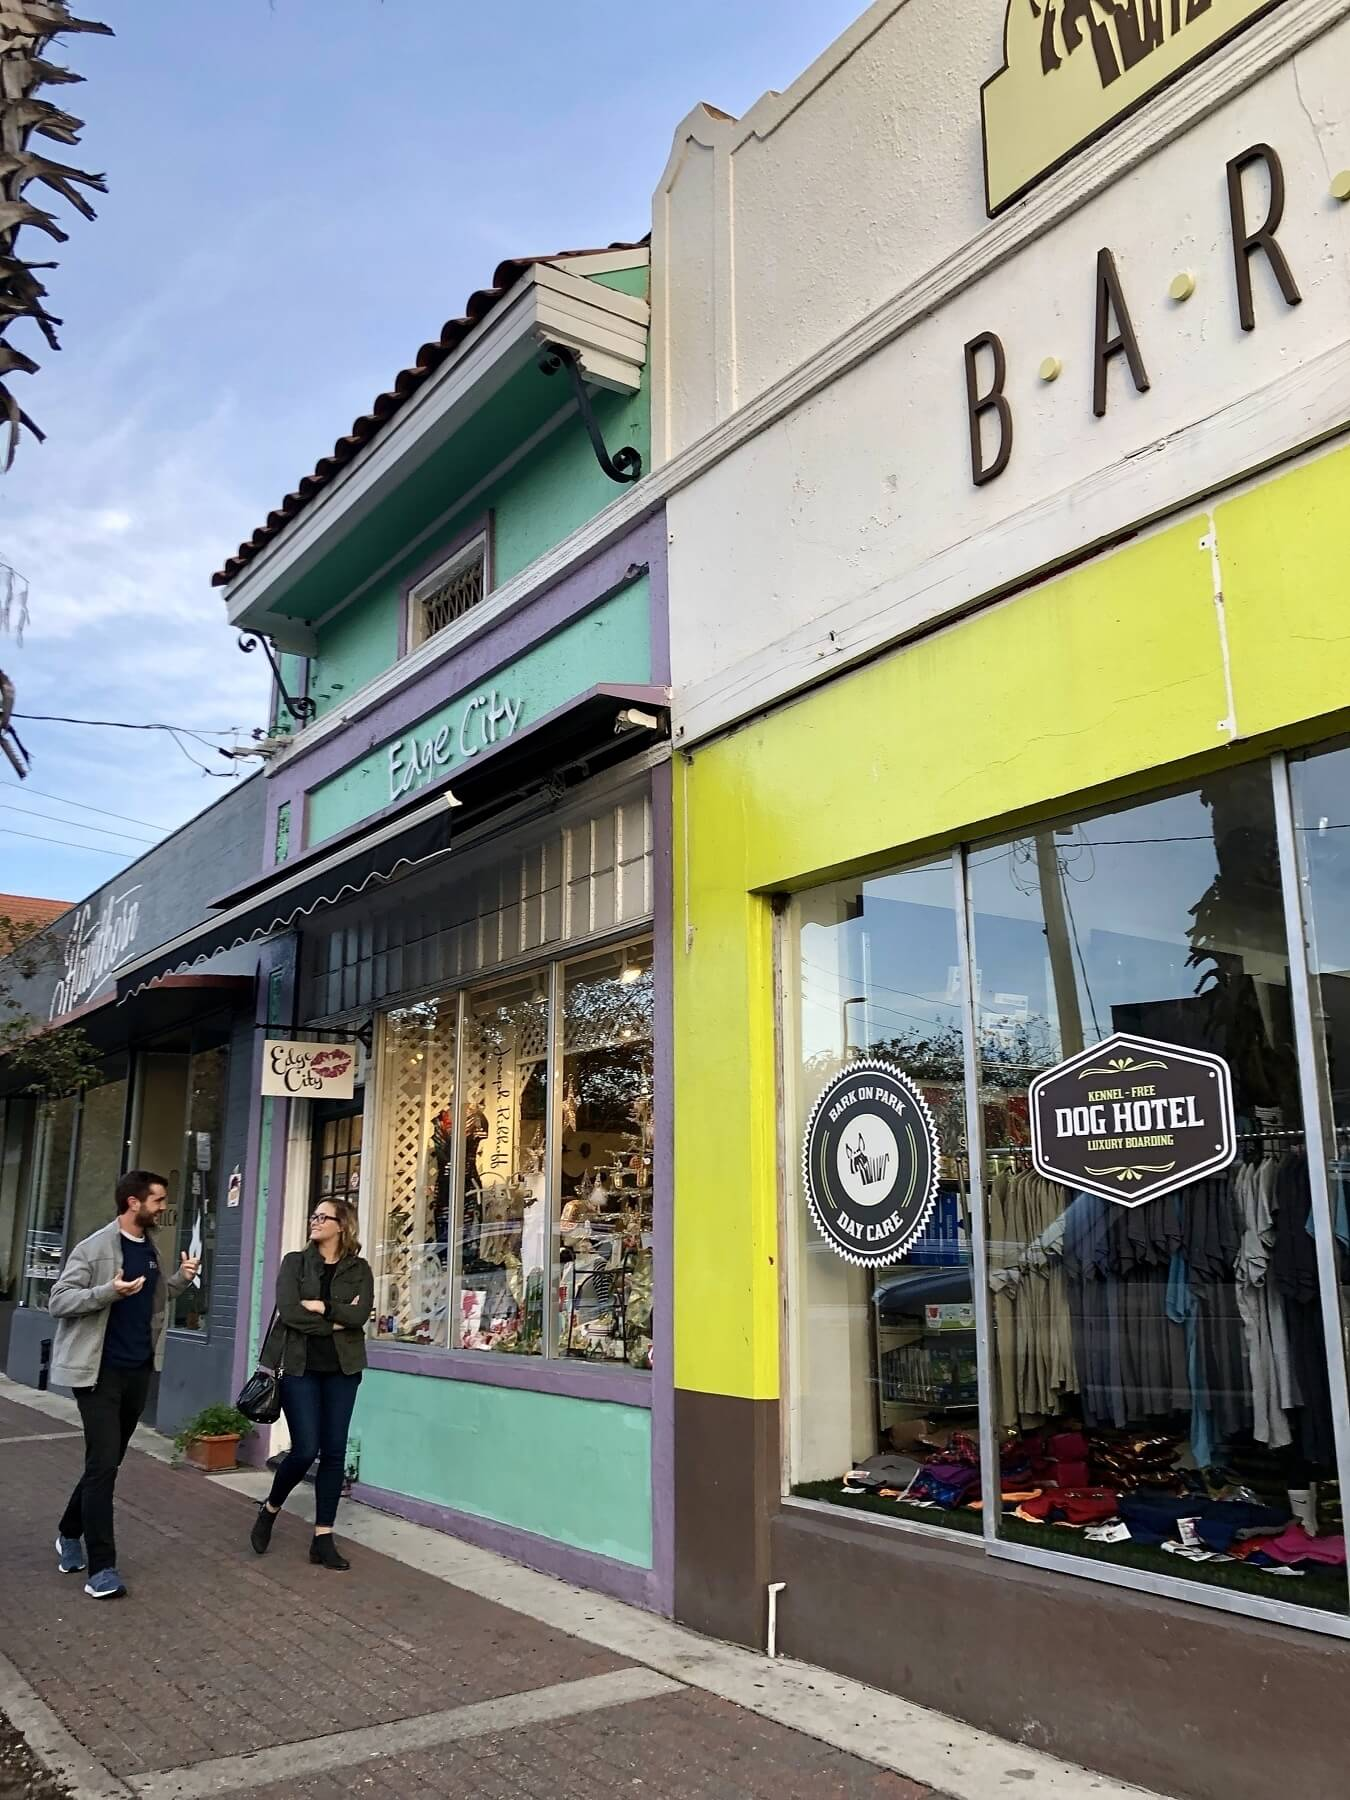 """Jacksonville, Florida — Popular stops in Five Points include the pooch-friendly <a href=""""http://www.thebarkboutique.com"""">Bark Boutique</a>and women's clothing store <a href=""""https://www.facebook.com/Edge-City-49303541023/"""">Edge City</a>."""